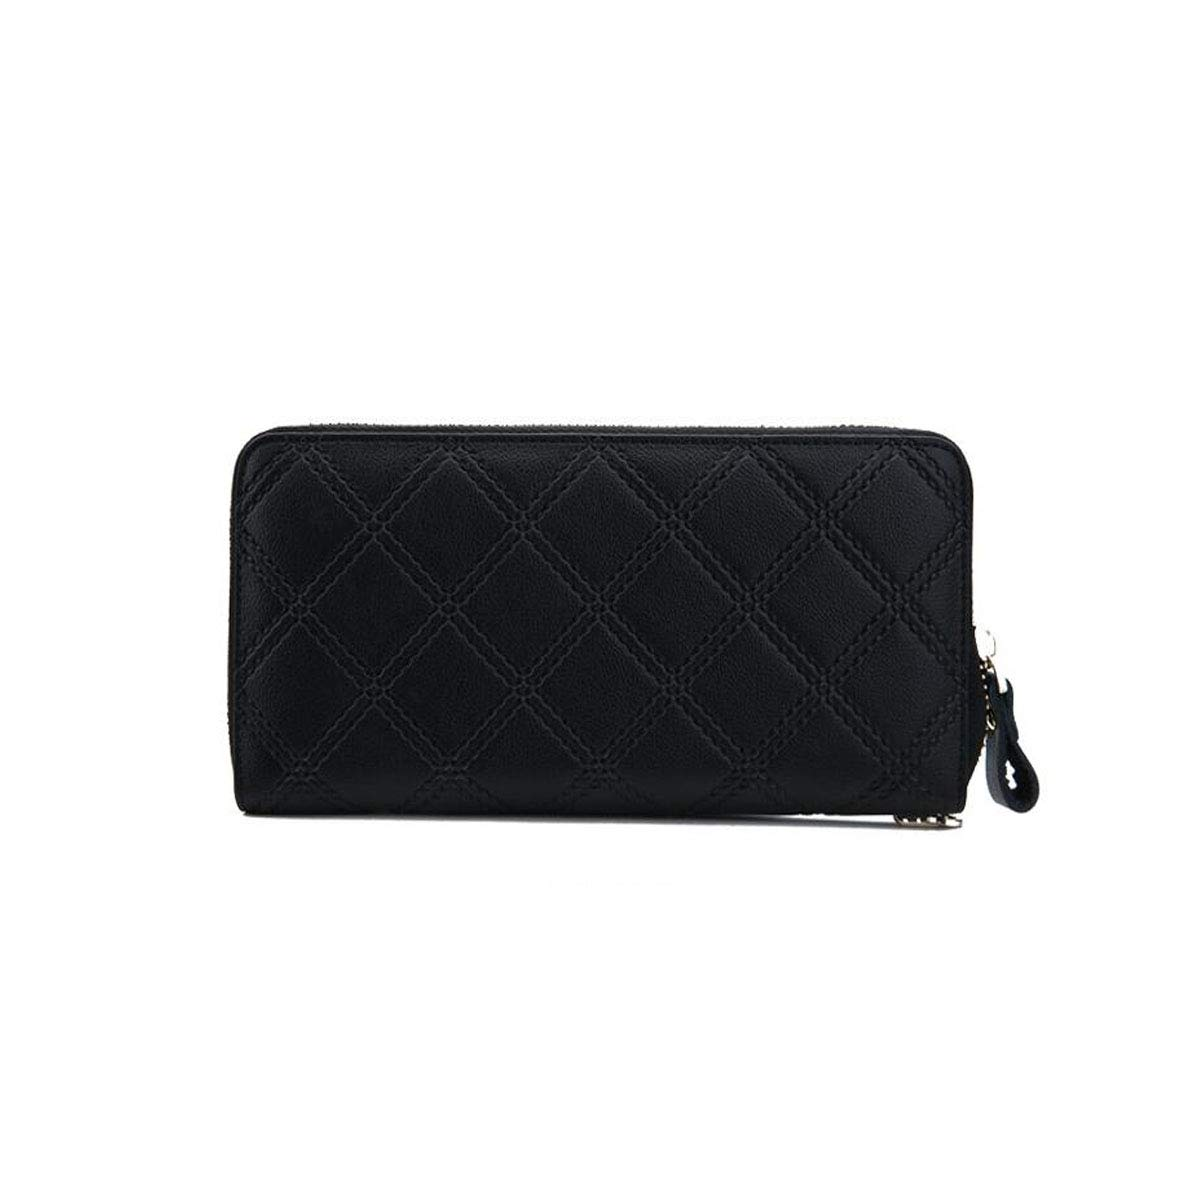 Size cm Stealth Mode Blocking Leather Wallet 20 2 9.5 Kalmar RFID Travel Wallet for Women Leather Handmade Classic Plaid Long Zip Large Capacity Wallet Black